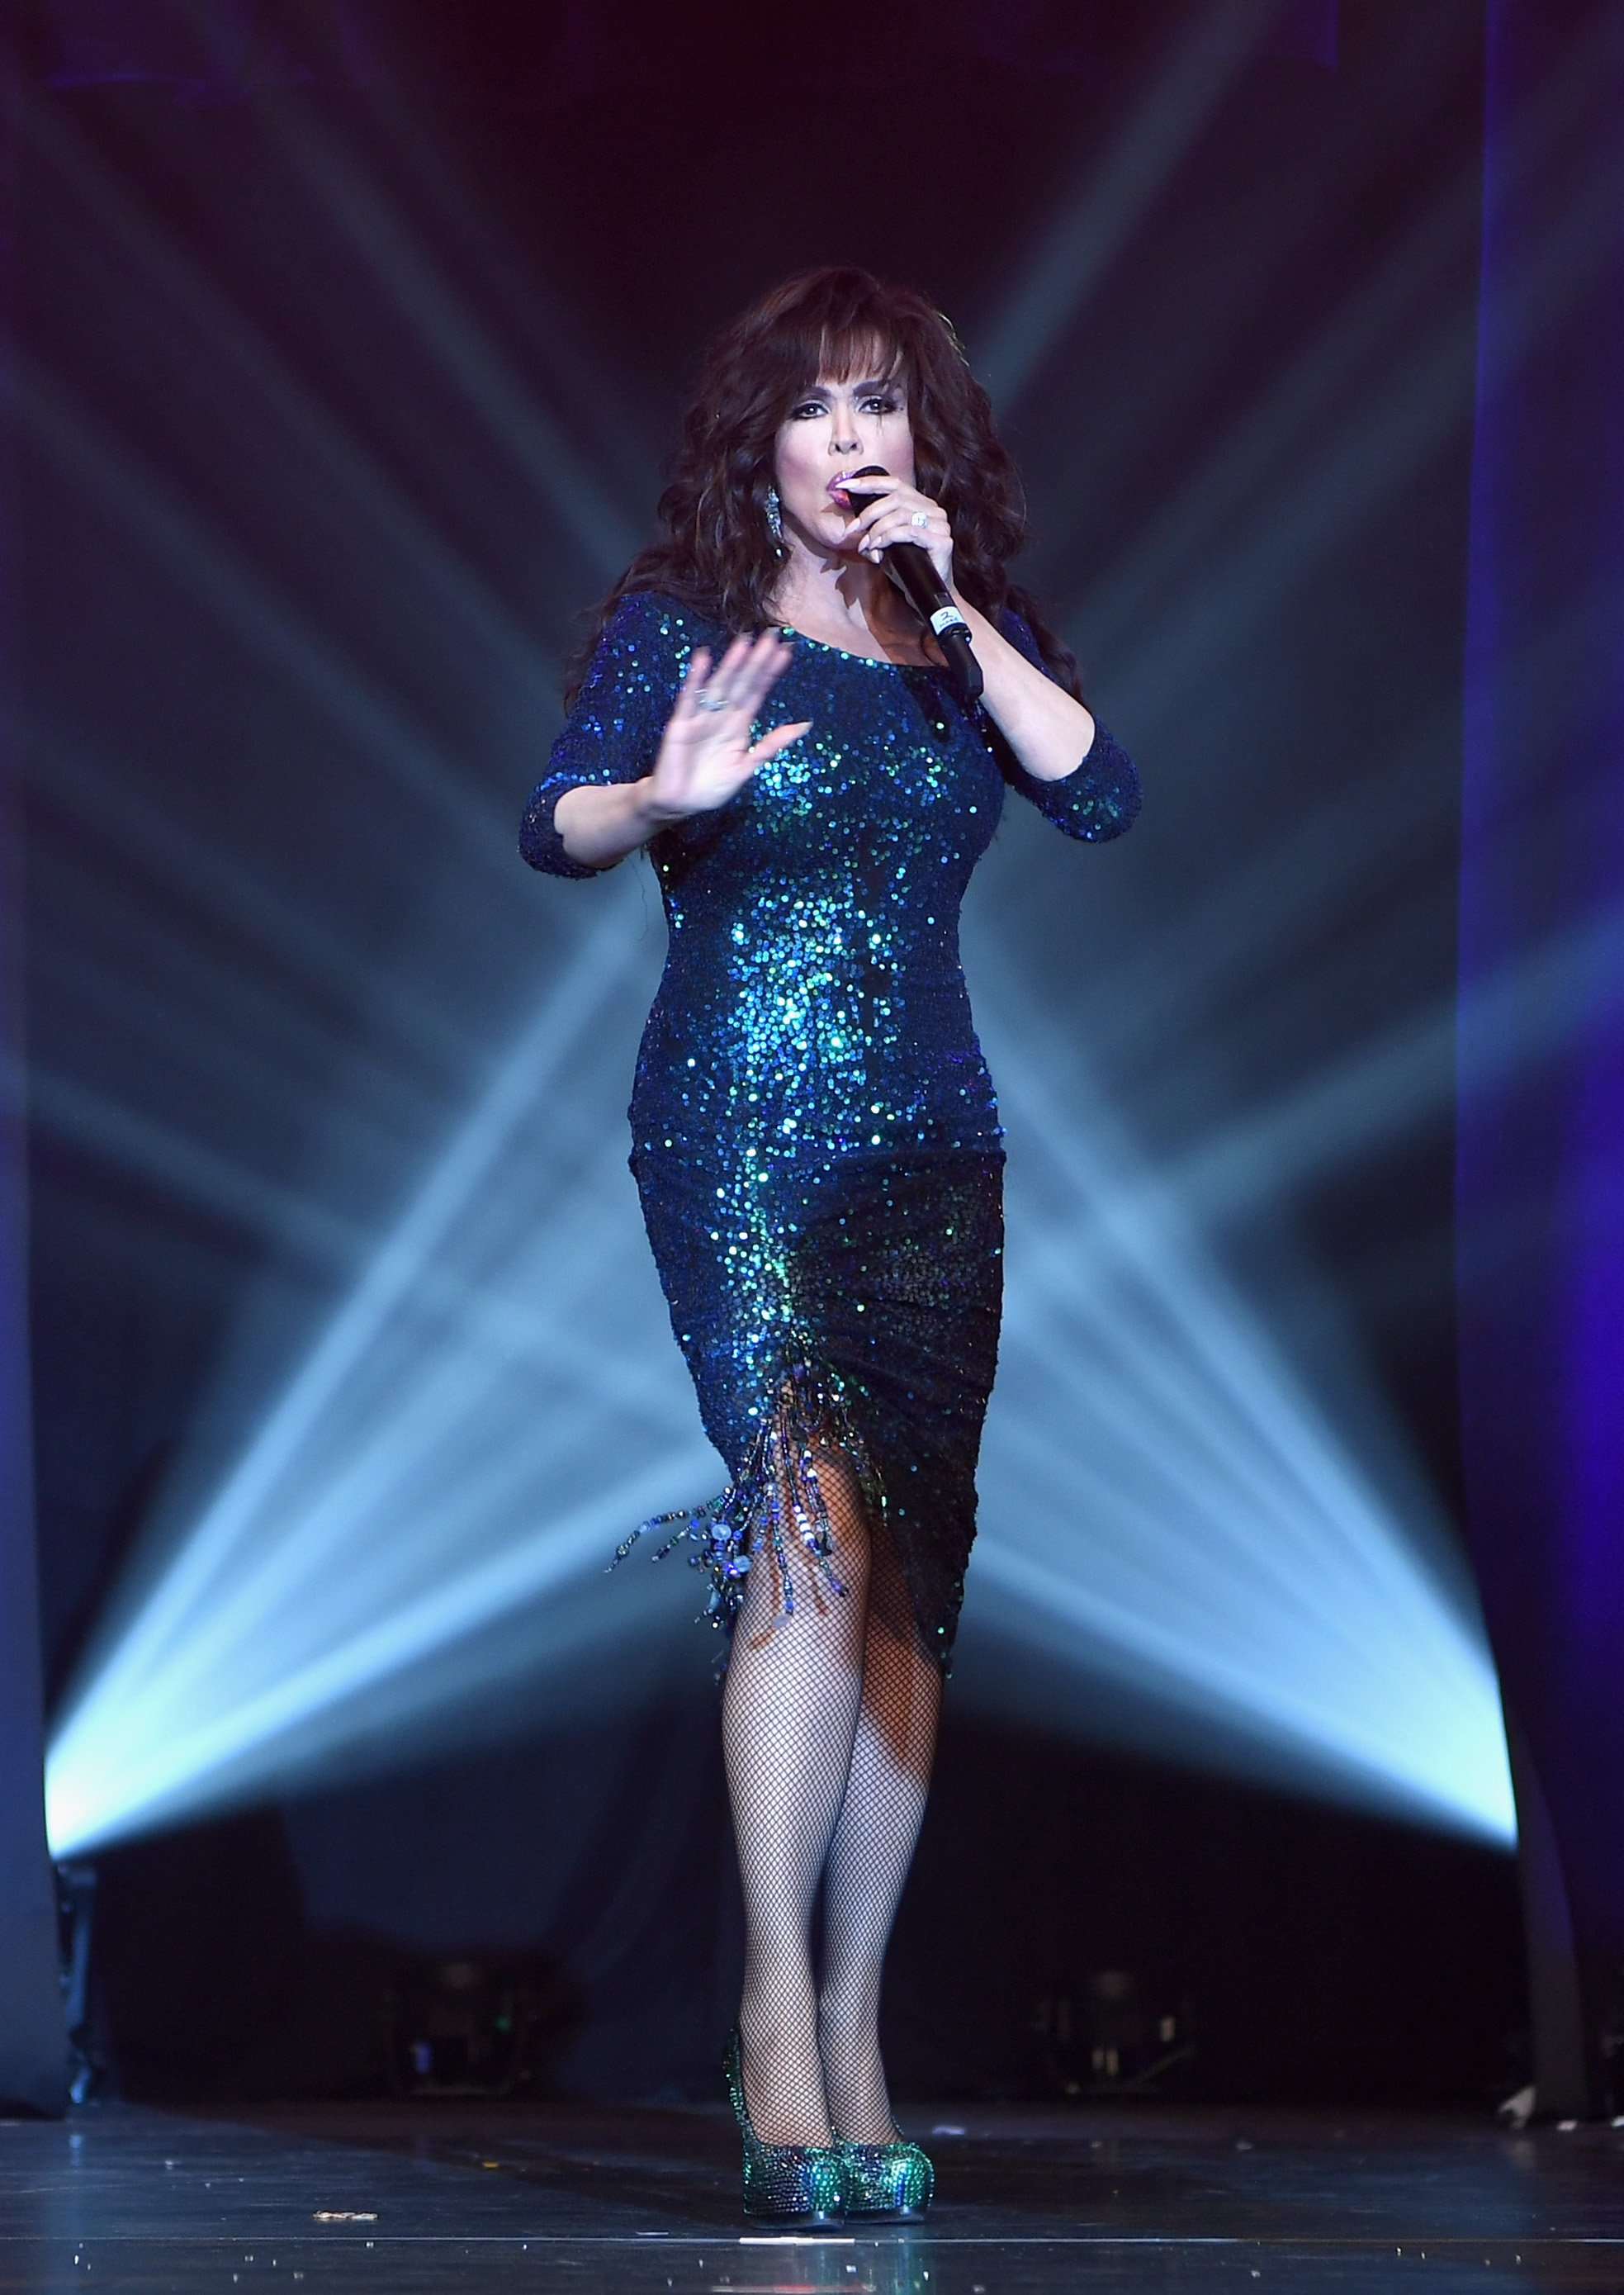 Marie Osmond performs during the 50th anniversary gala at Caesars Palace on August 6, 2016 in Las Vegas, Nevada   Photo: Getty Images